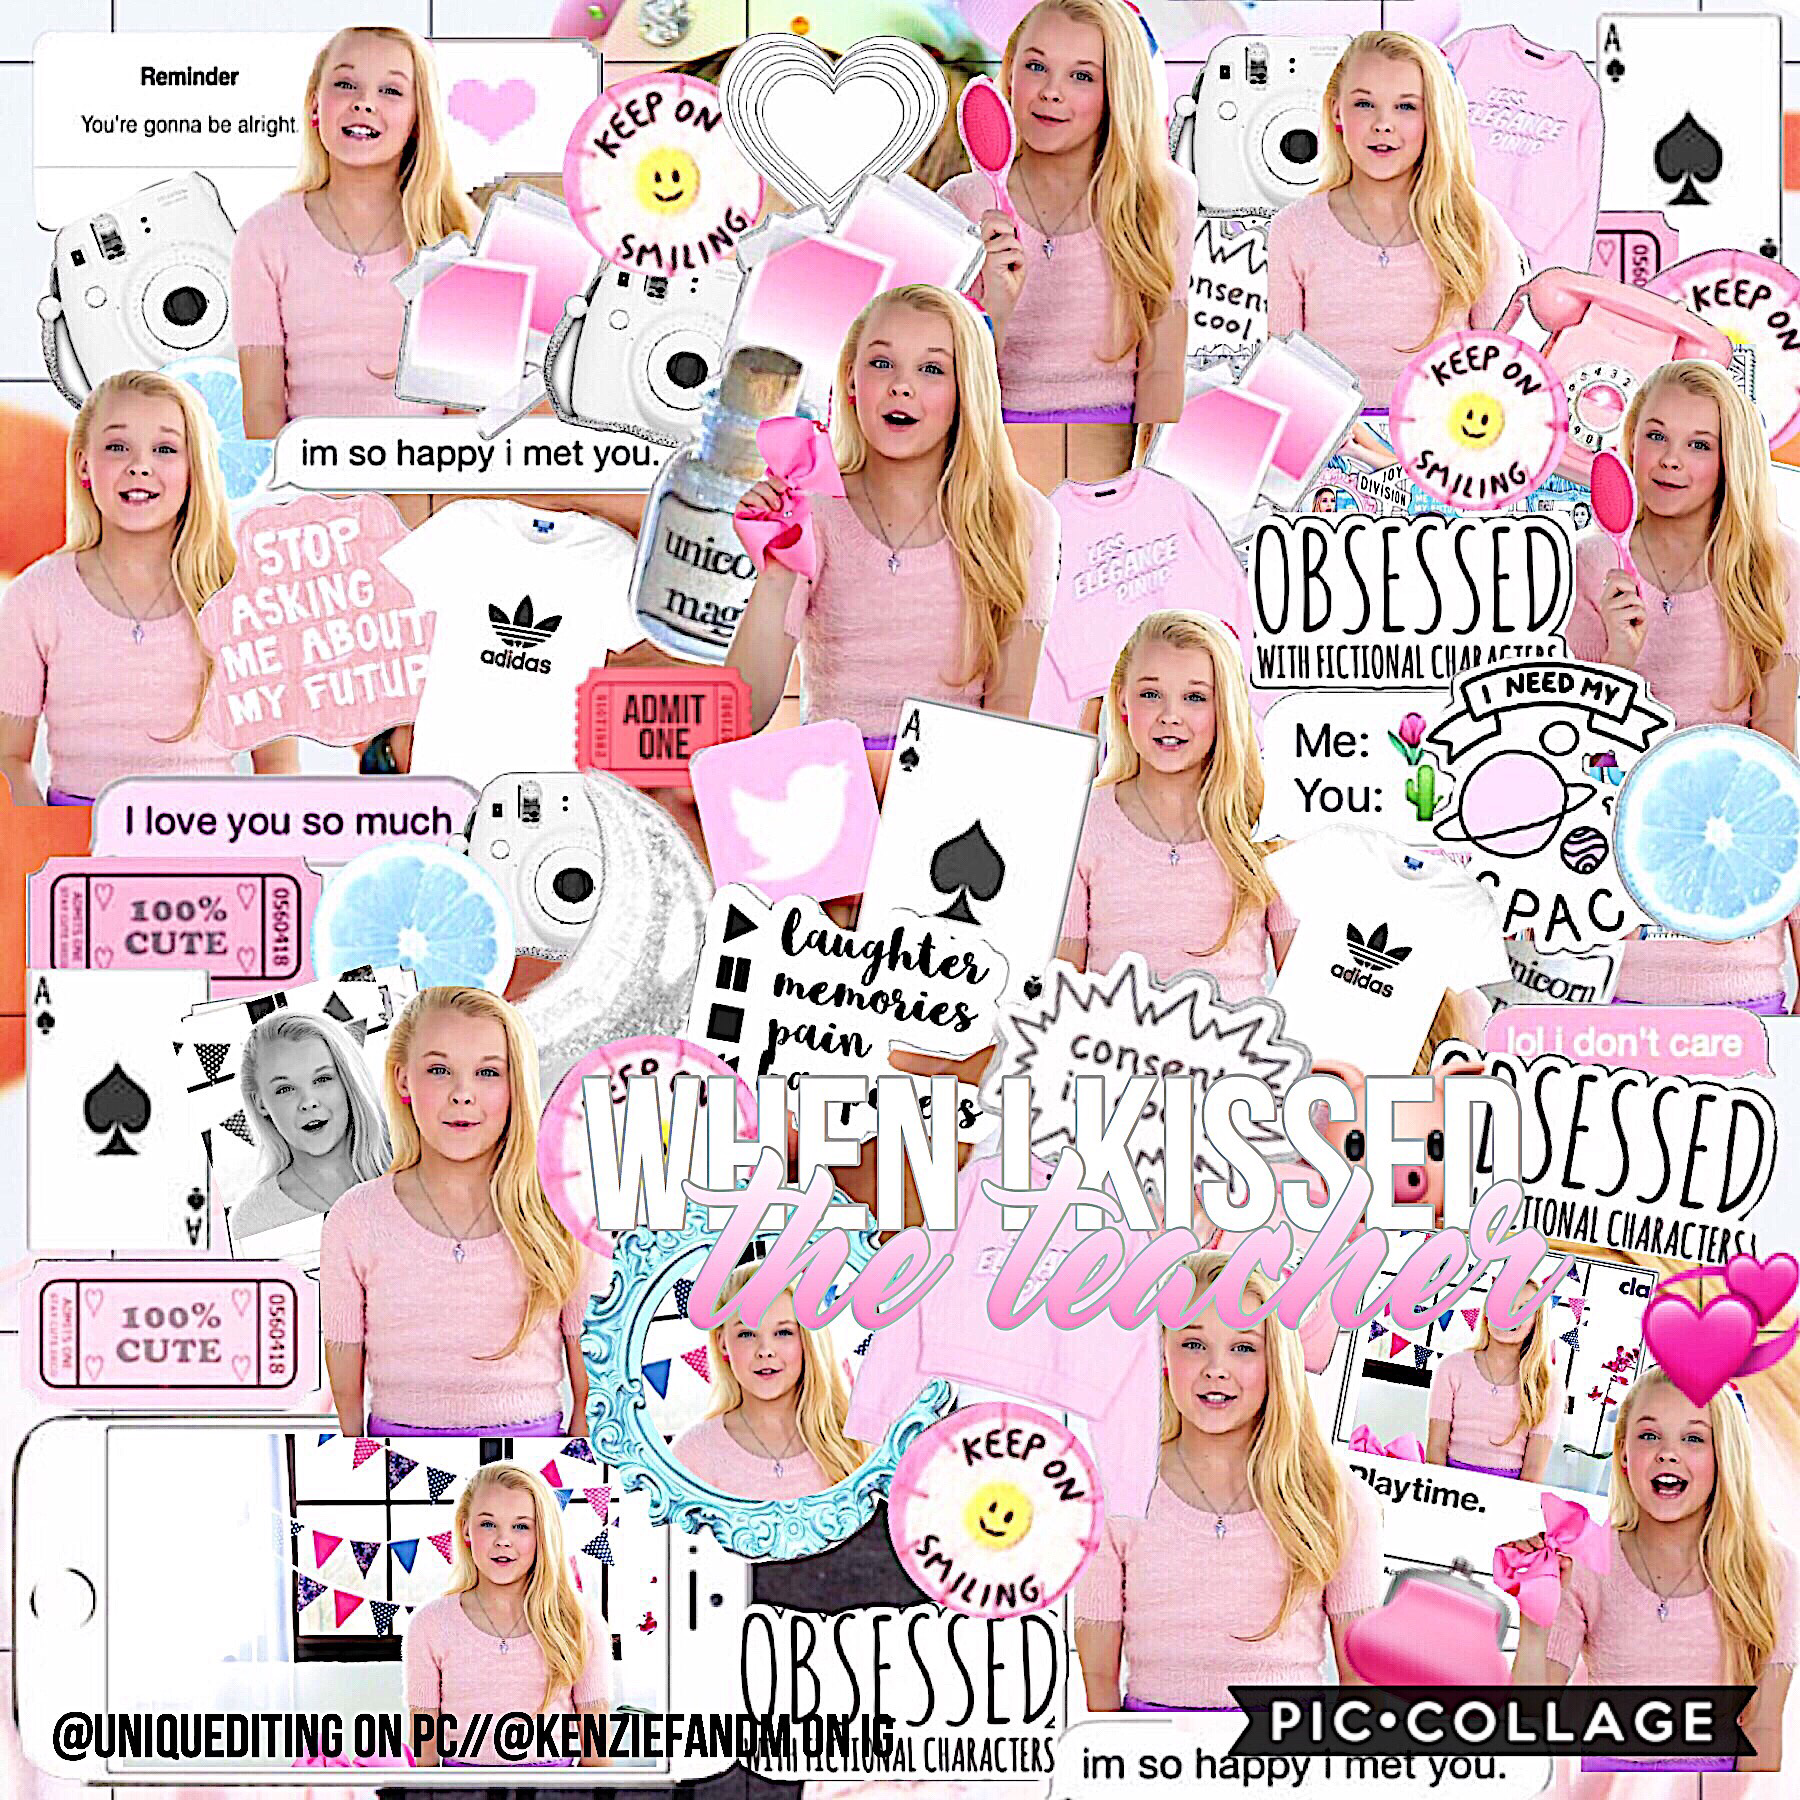 tap 💗 i made this on a plane so don't judge 😂 qotd:have you started school? if not when do you start school? aotd:i start school on august 27th